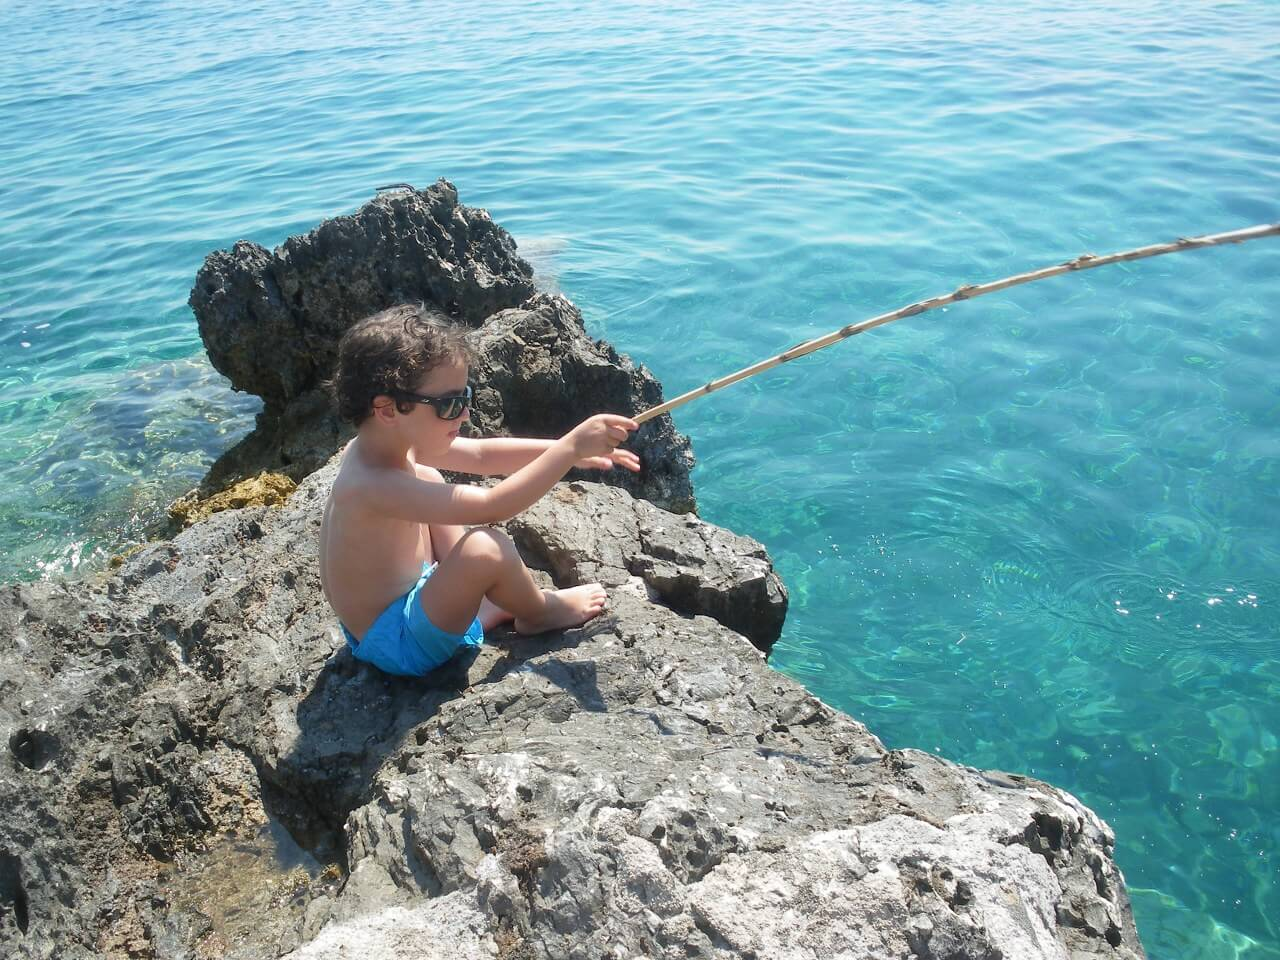 Fishing - Peche a la Crique